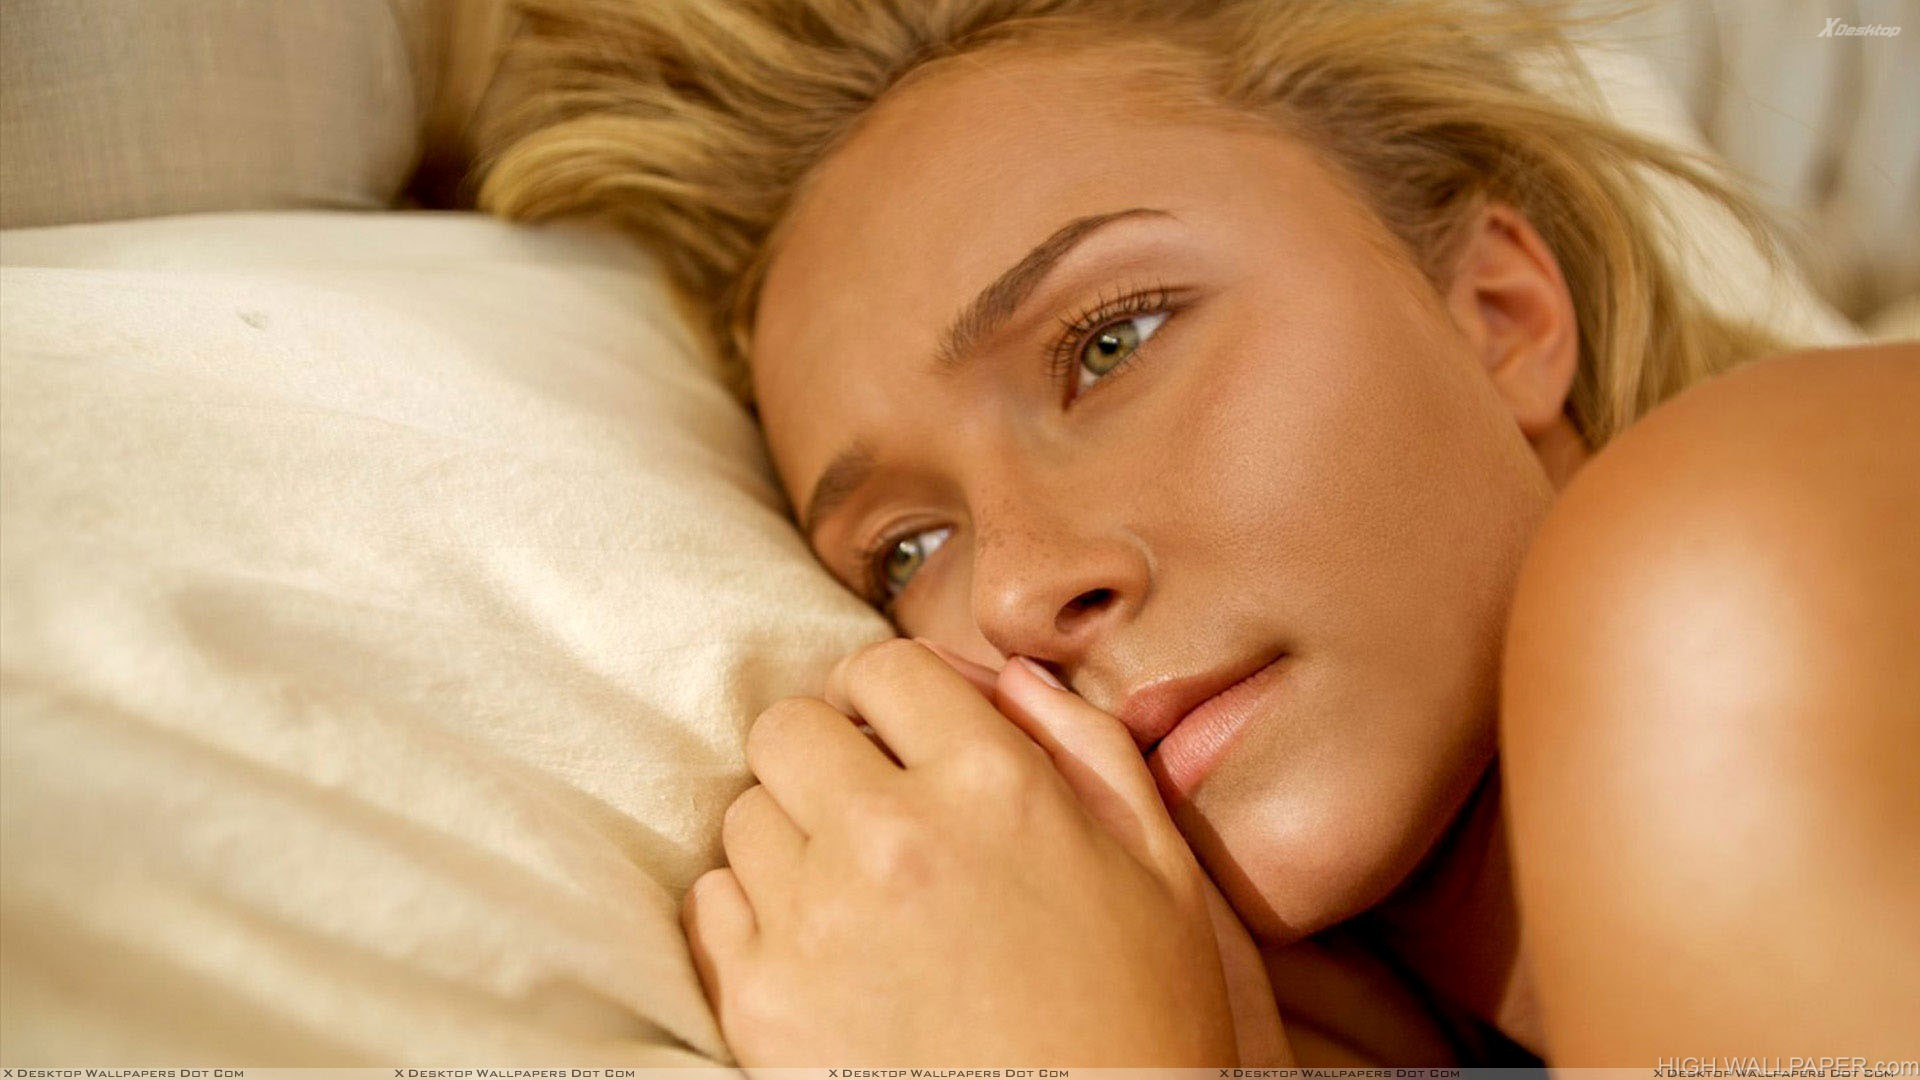 Hayden Panettiere Laying On Bed Innocent Face Closeup